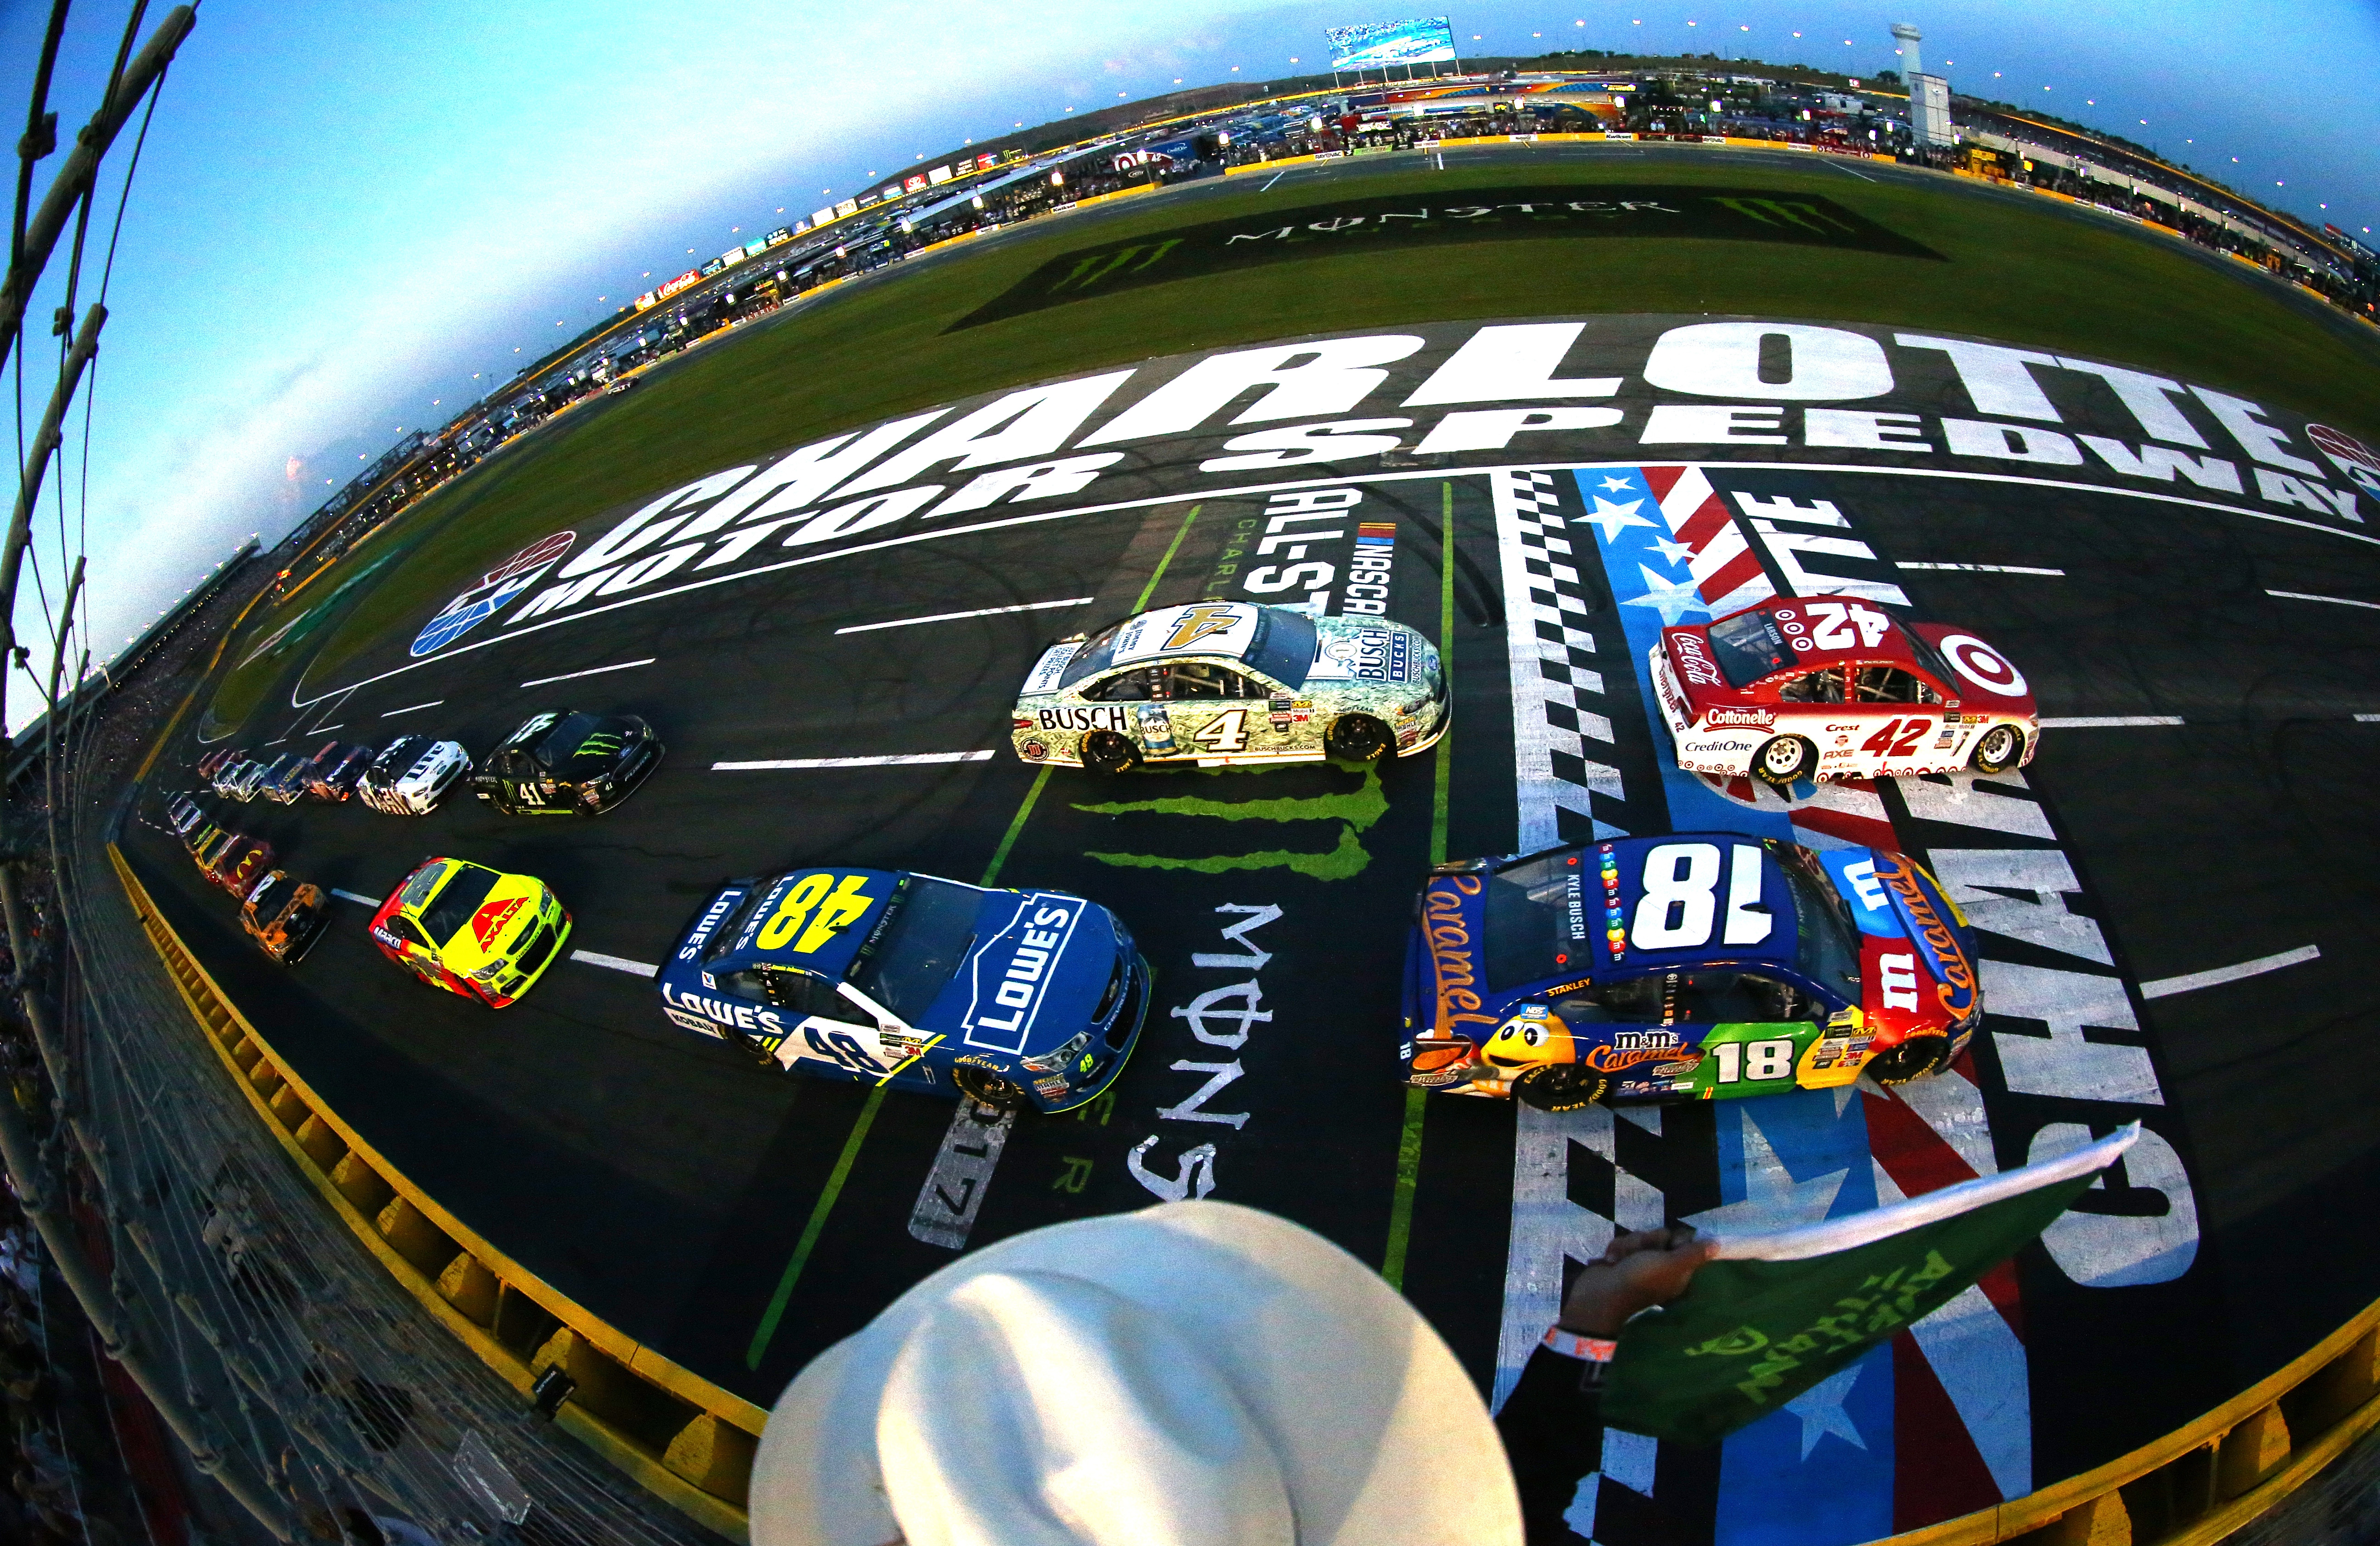 CHARLOTTE, NC - MAY 20:  Kyle Larson, driver of the #42 Target Chevrolet, and Kyle Busch, driver of the #18 M&M's Caramel Toyota, take the green flag to start the Monster Energy NASCAR All Star Race at Charlotte Motor Speedway on May 20, 2017 in Charlotte, North Carolina.  (Photo by Sarah Crabill/Getty Images)